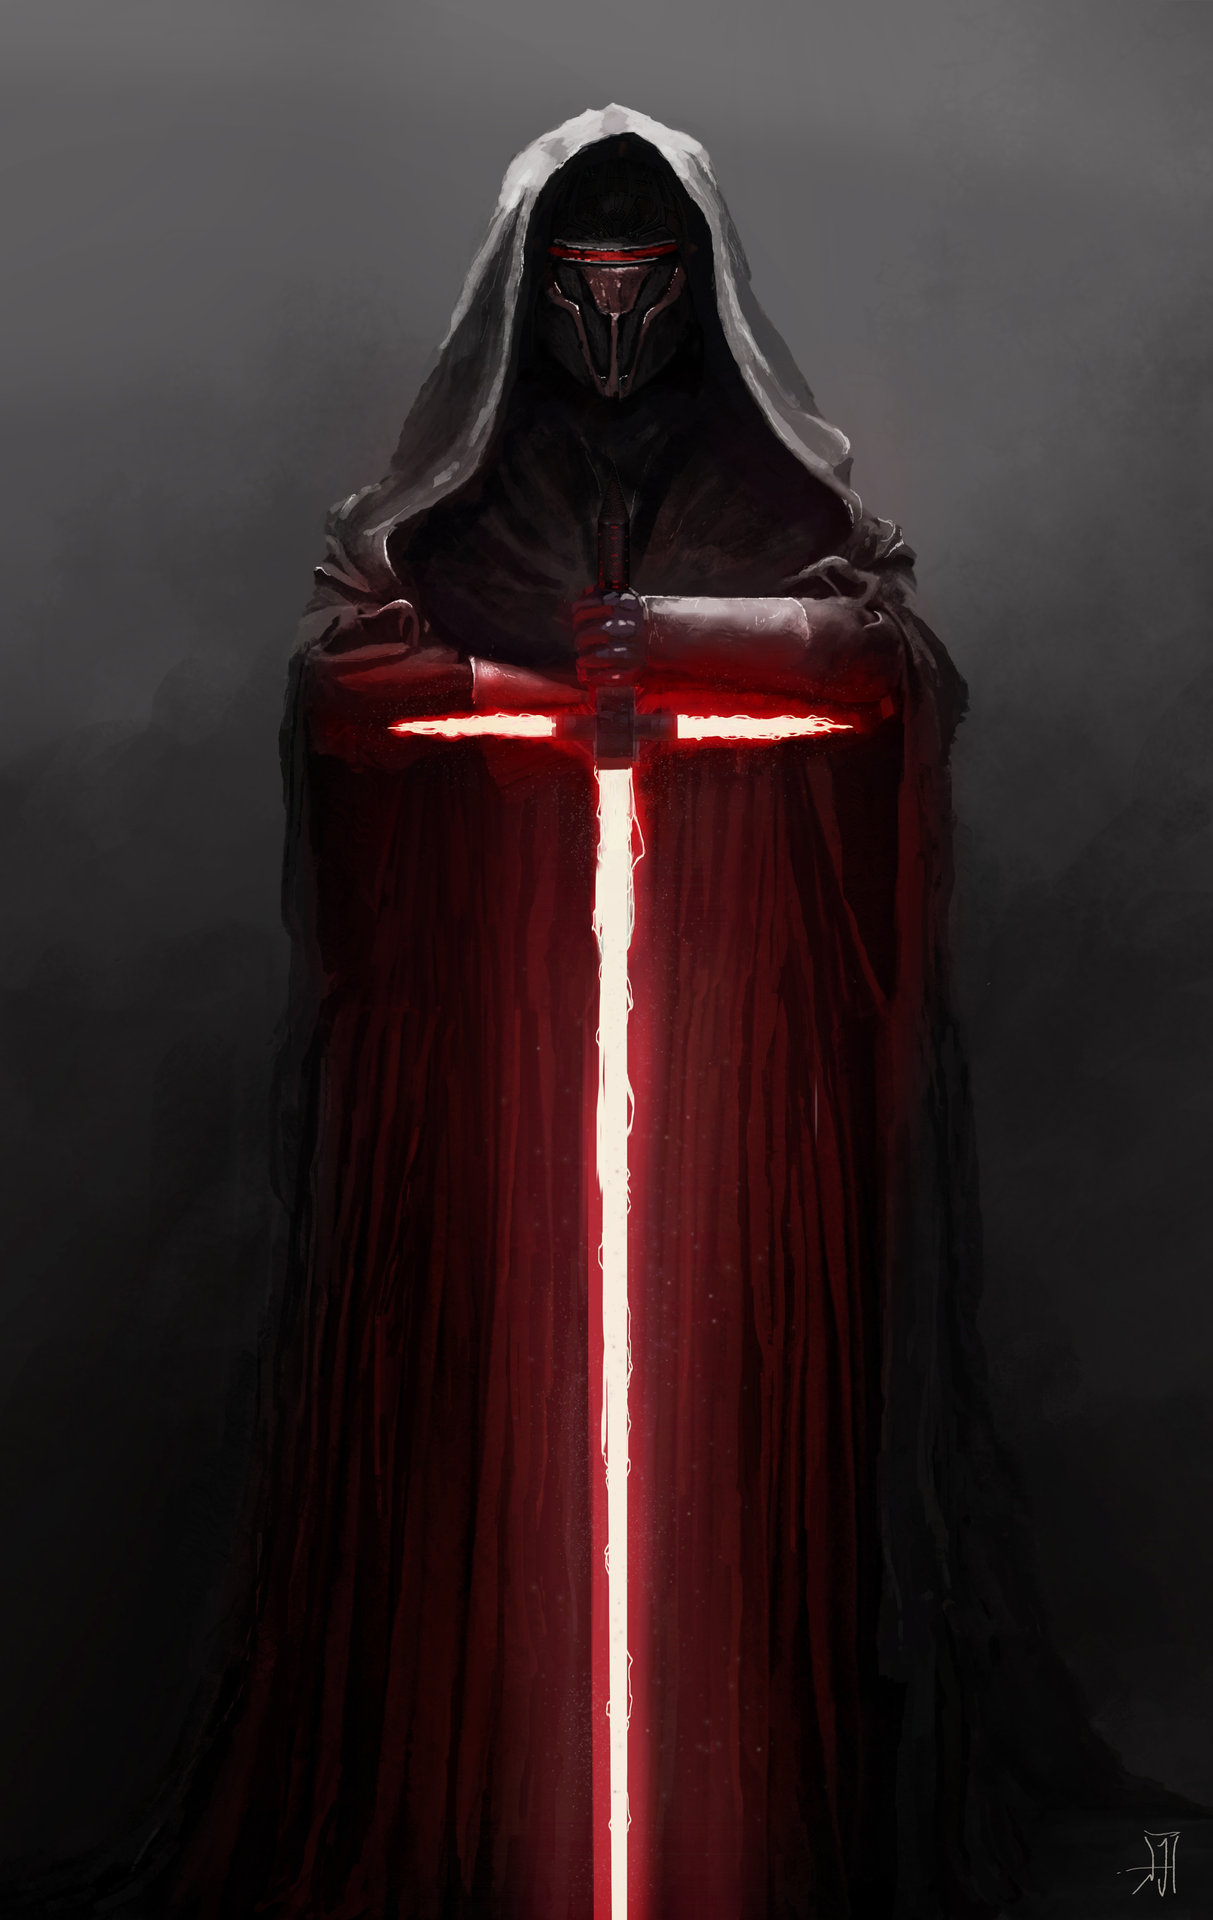 jakub-cervenka-force-awakens-by-jakub-cervenka